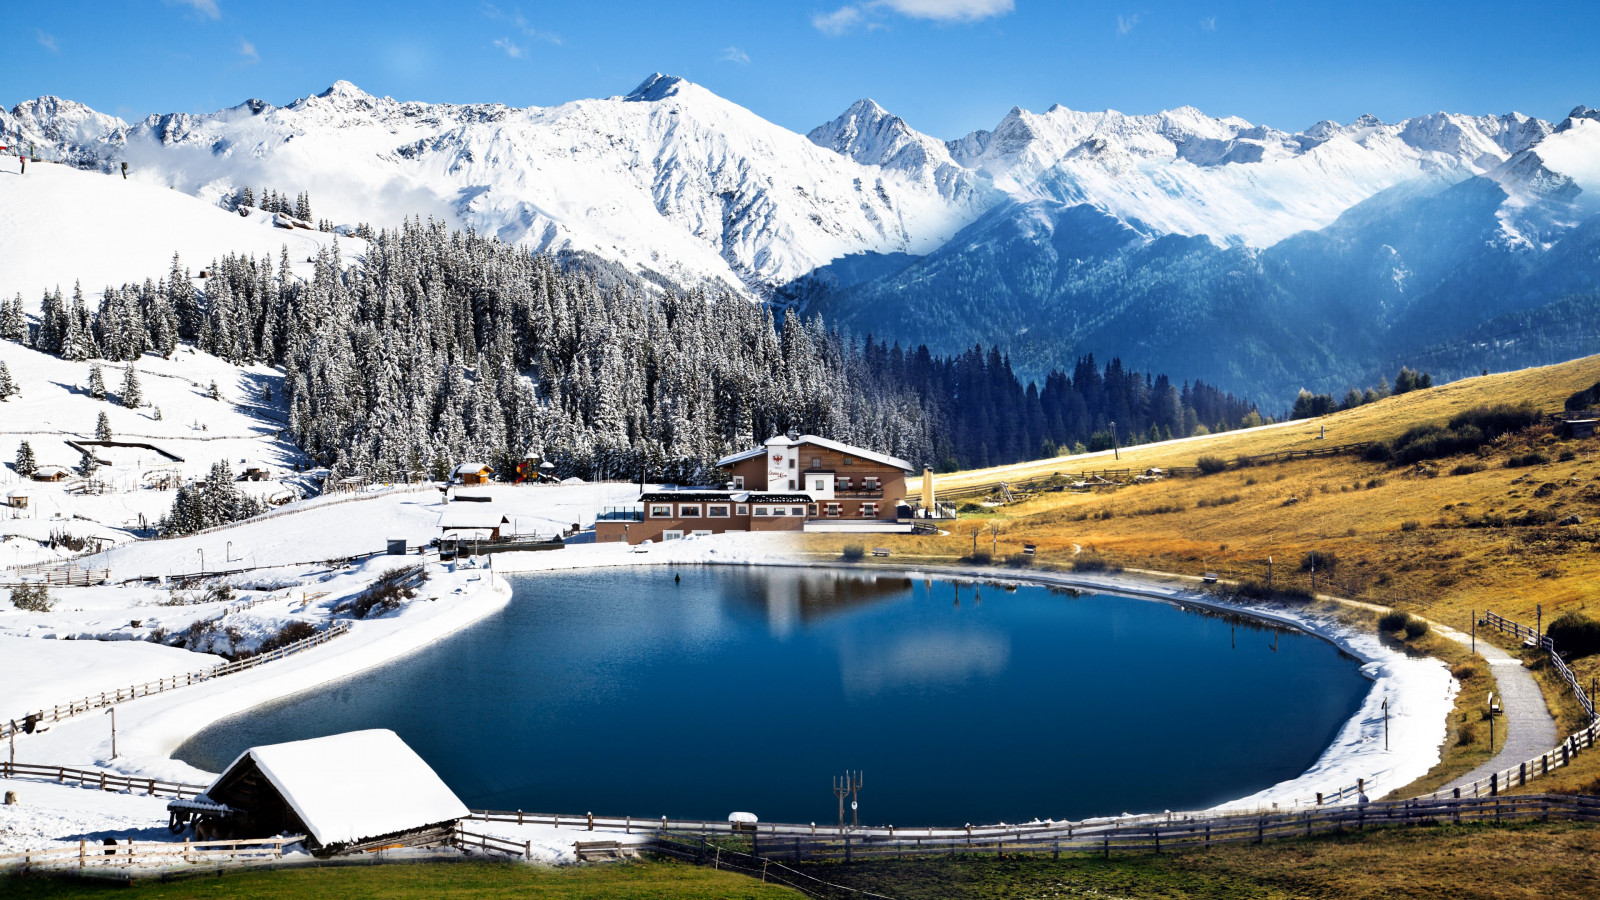 Winter landscape from Alps wallpaper 1600x900